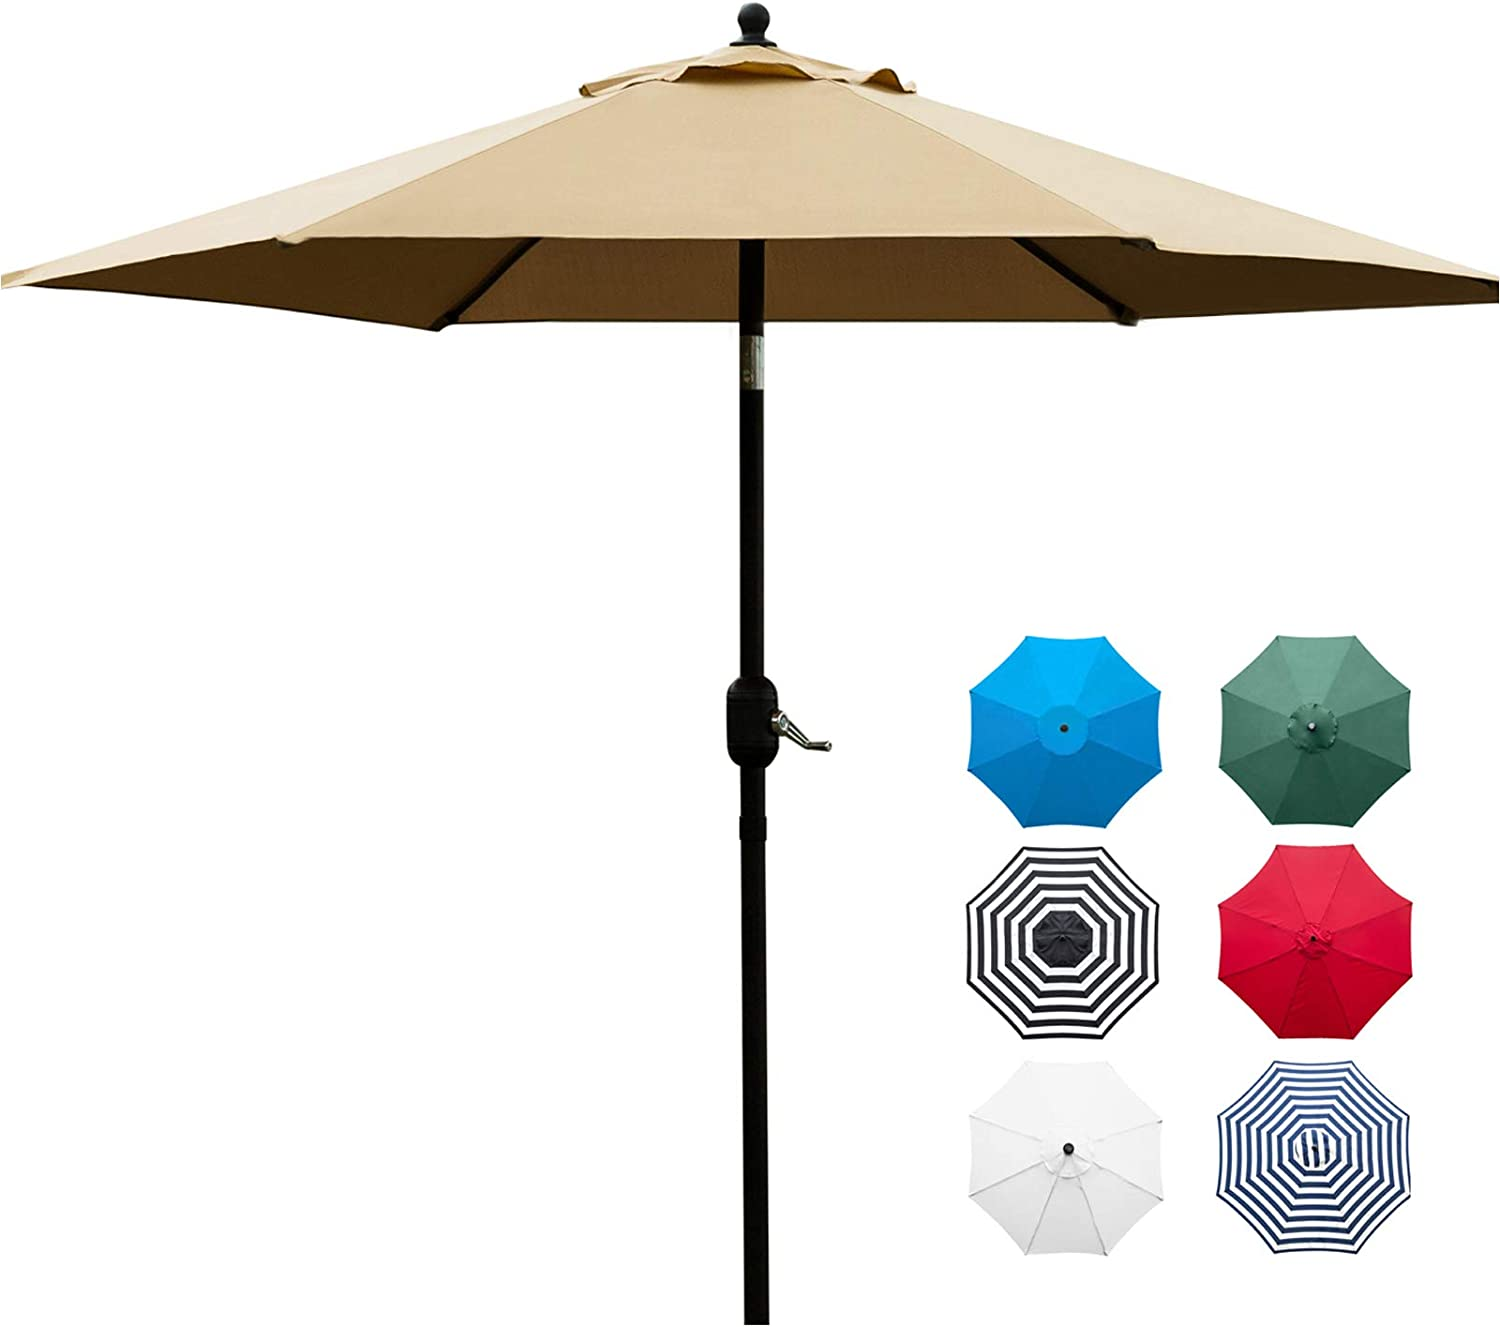 Sunnyglade 7.5' Patio Umbrella Max 43% OFF Table Market wit sold out Outdoor